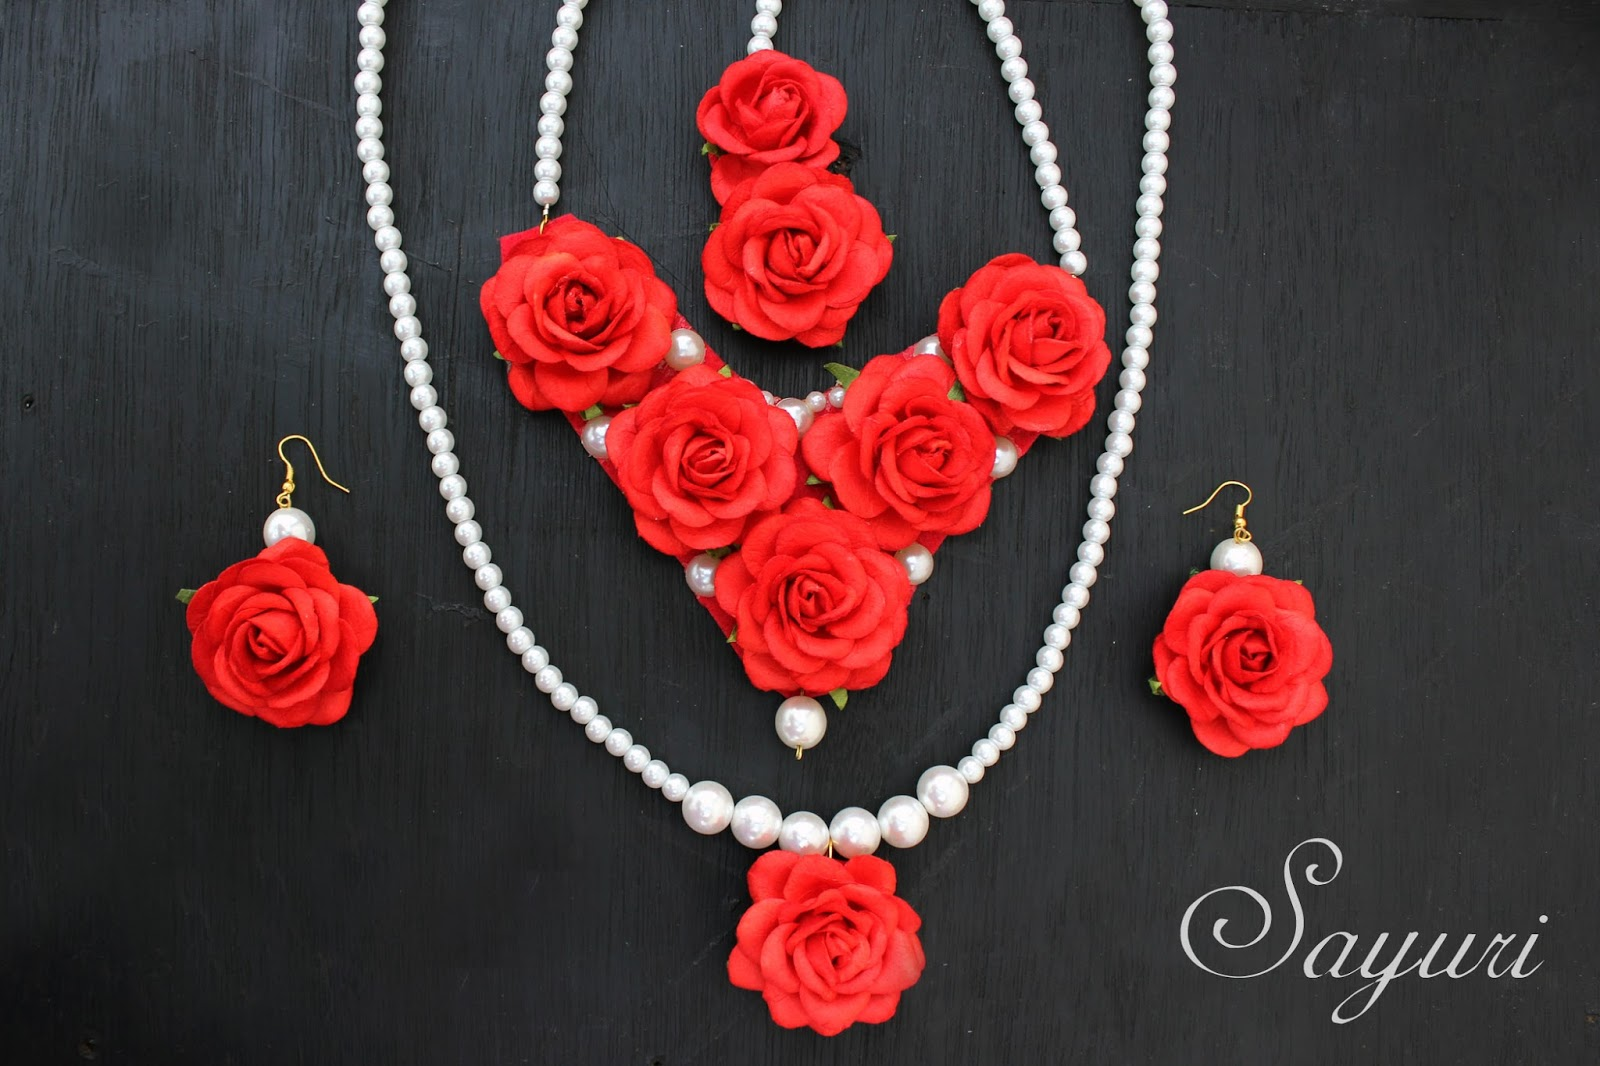 Flower jewelry collection